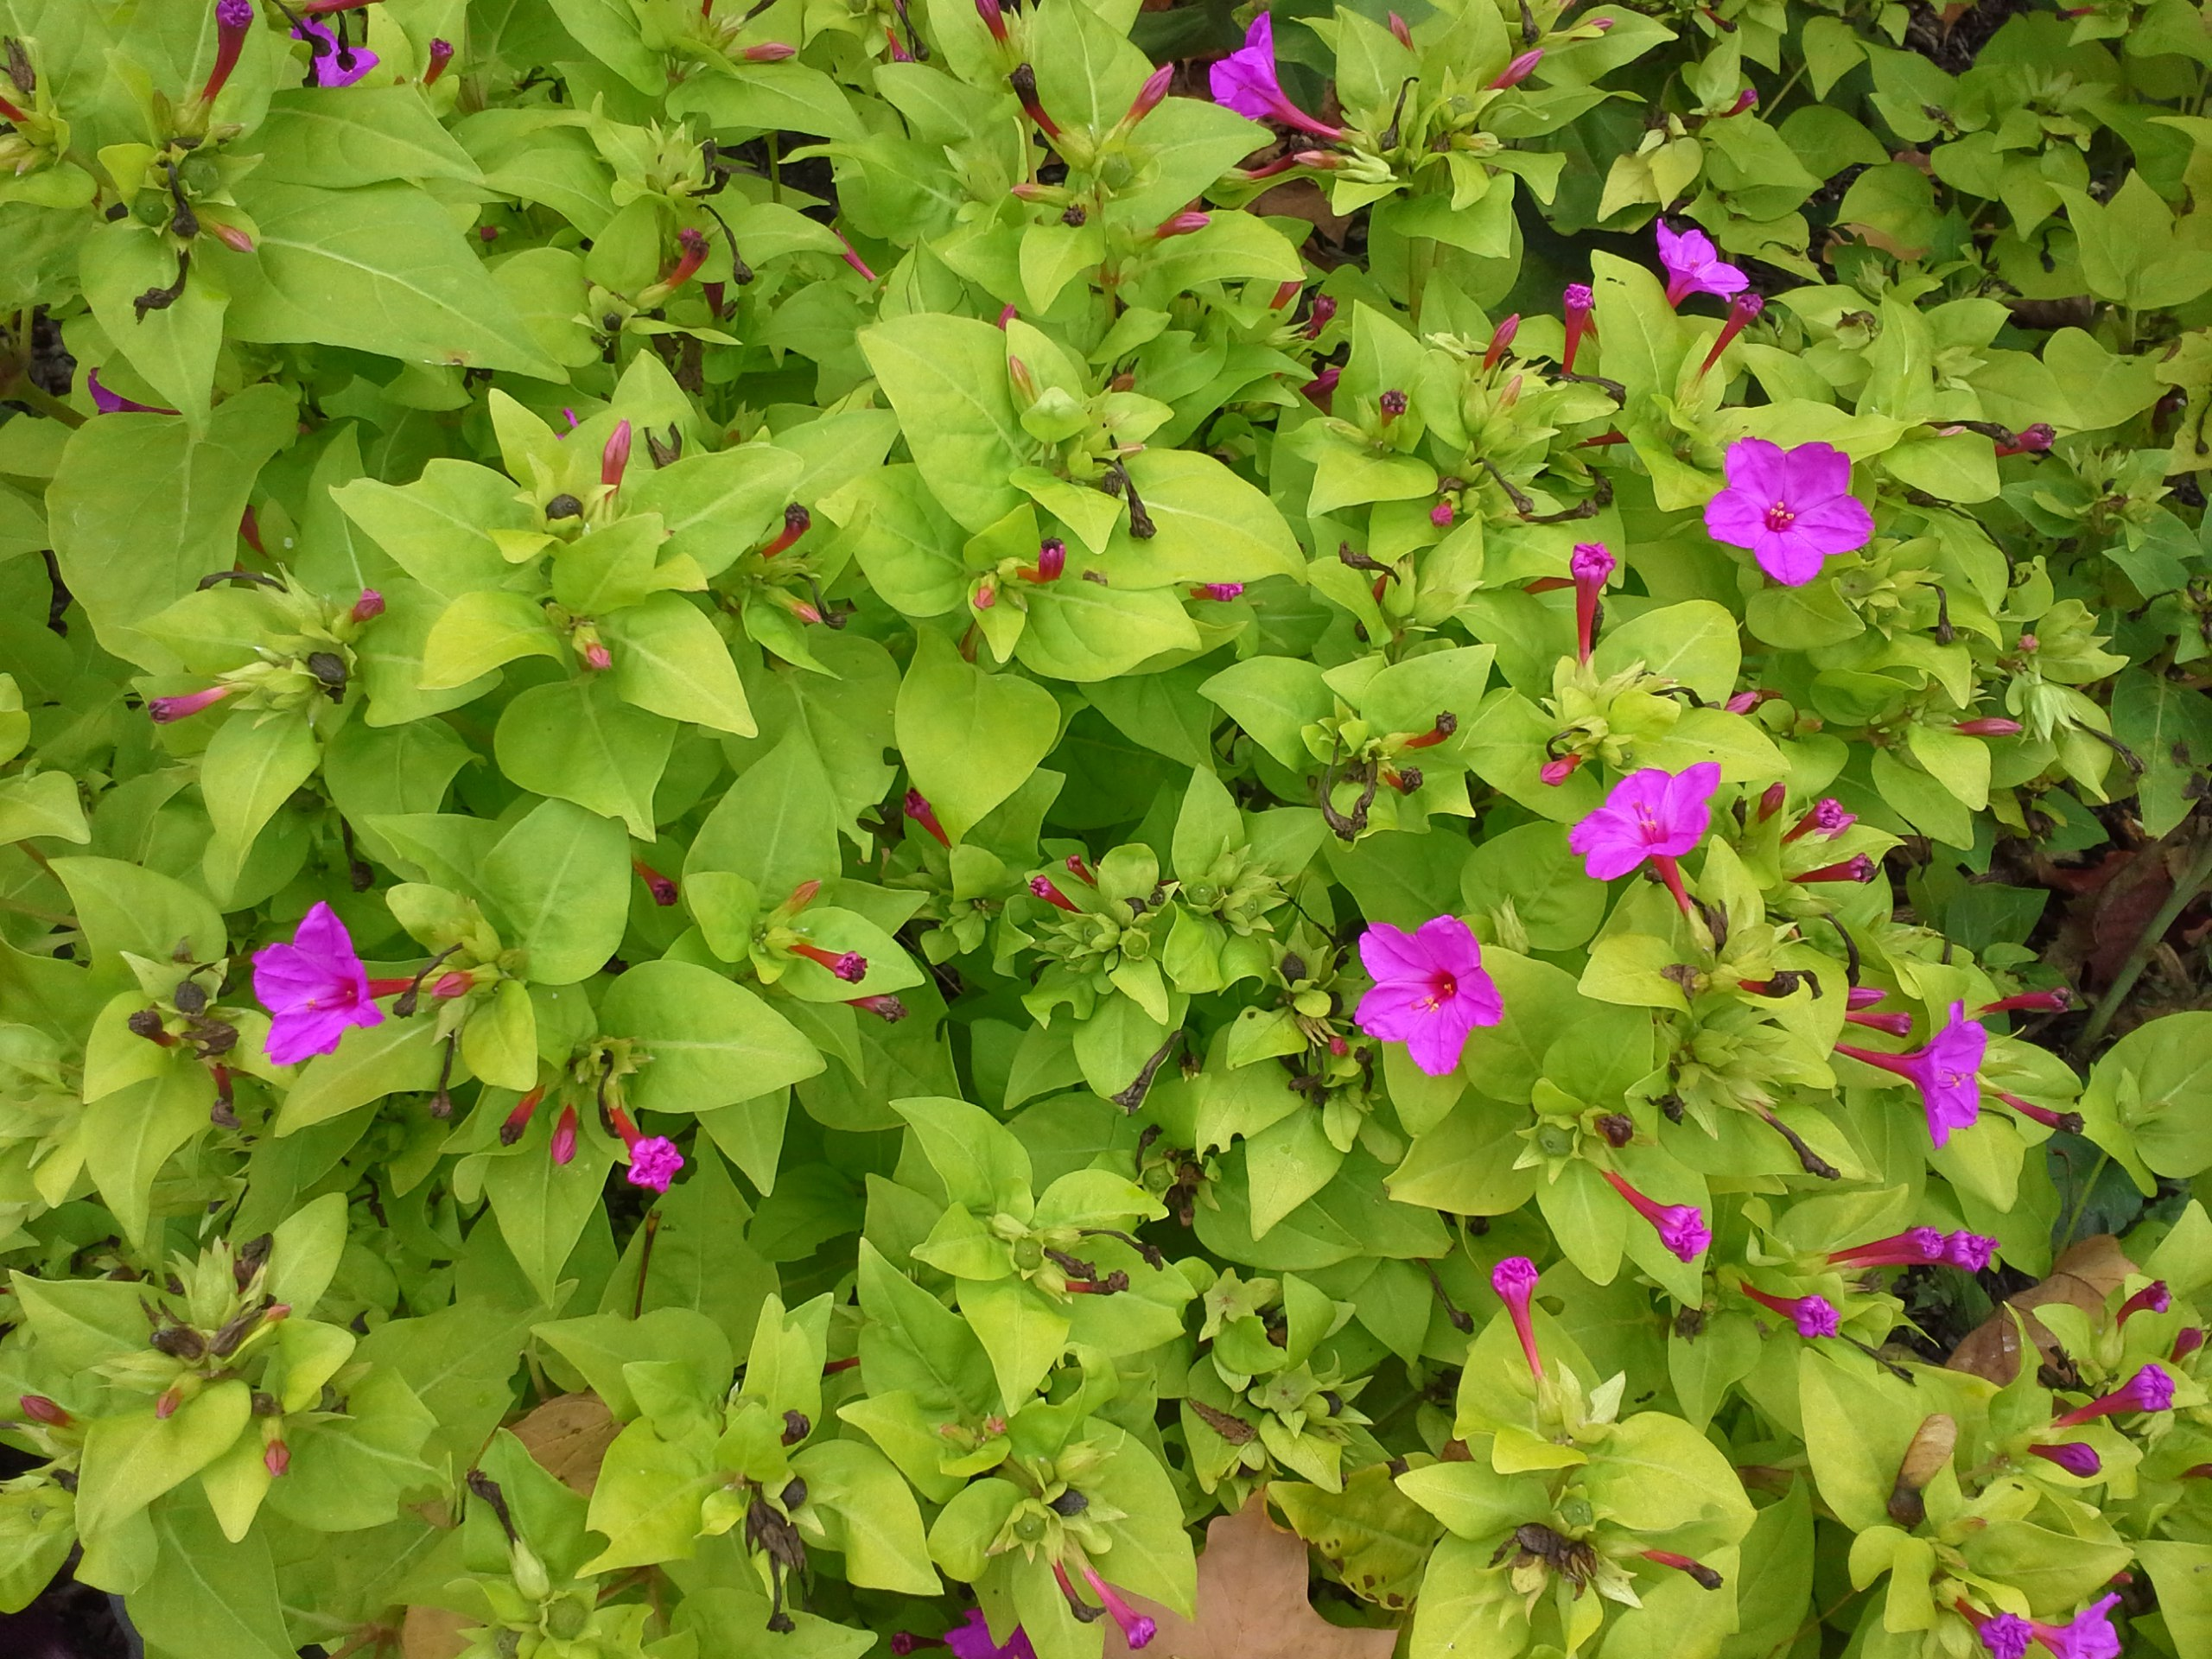 How to grow ageratum gardening four o clocks growing four o clocks mirabilis jalapa fouroclock izmirmasajfo